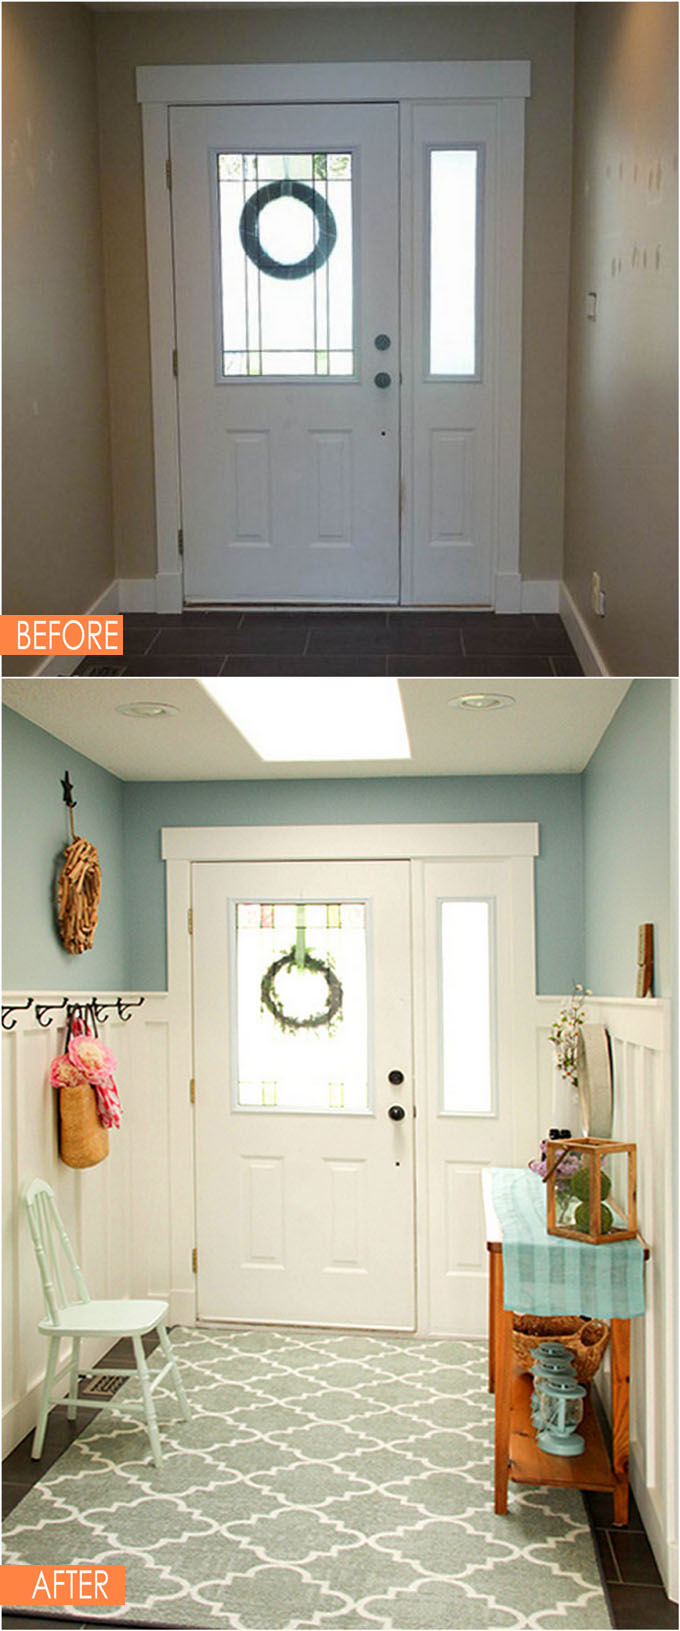 20-entryway-before-after-apieceofrainbowblog-3